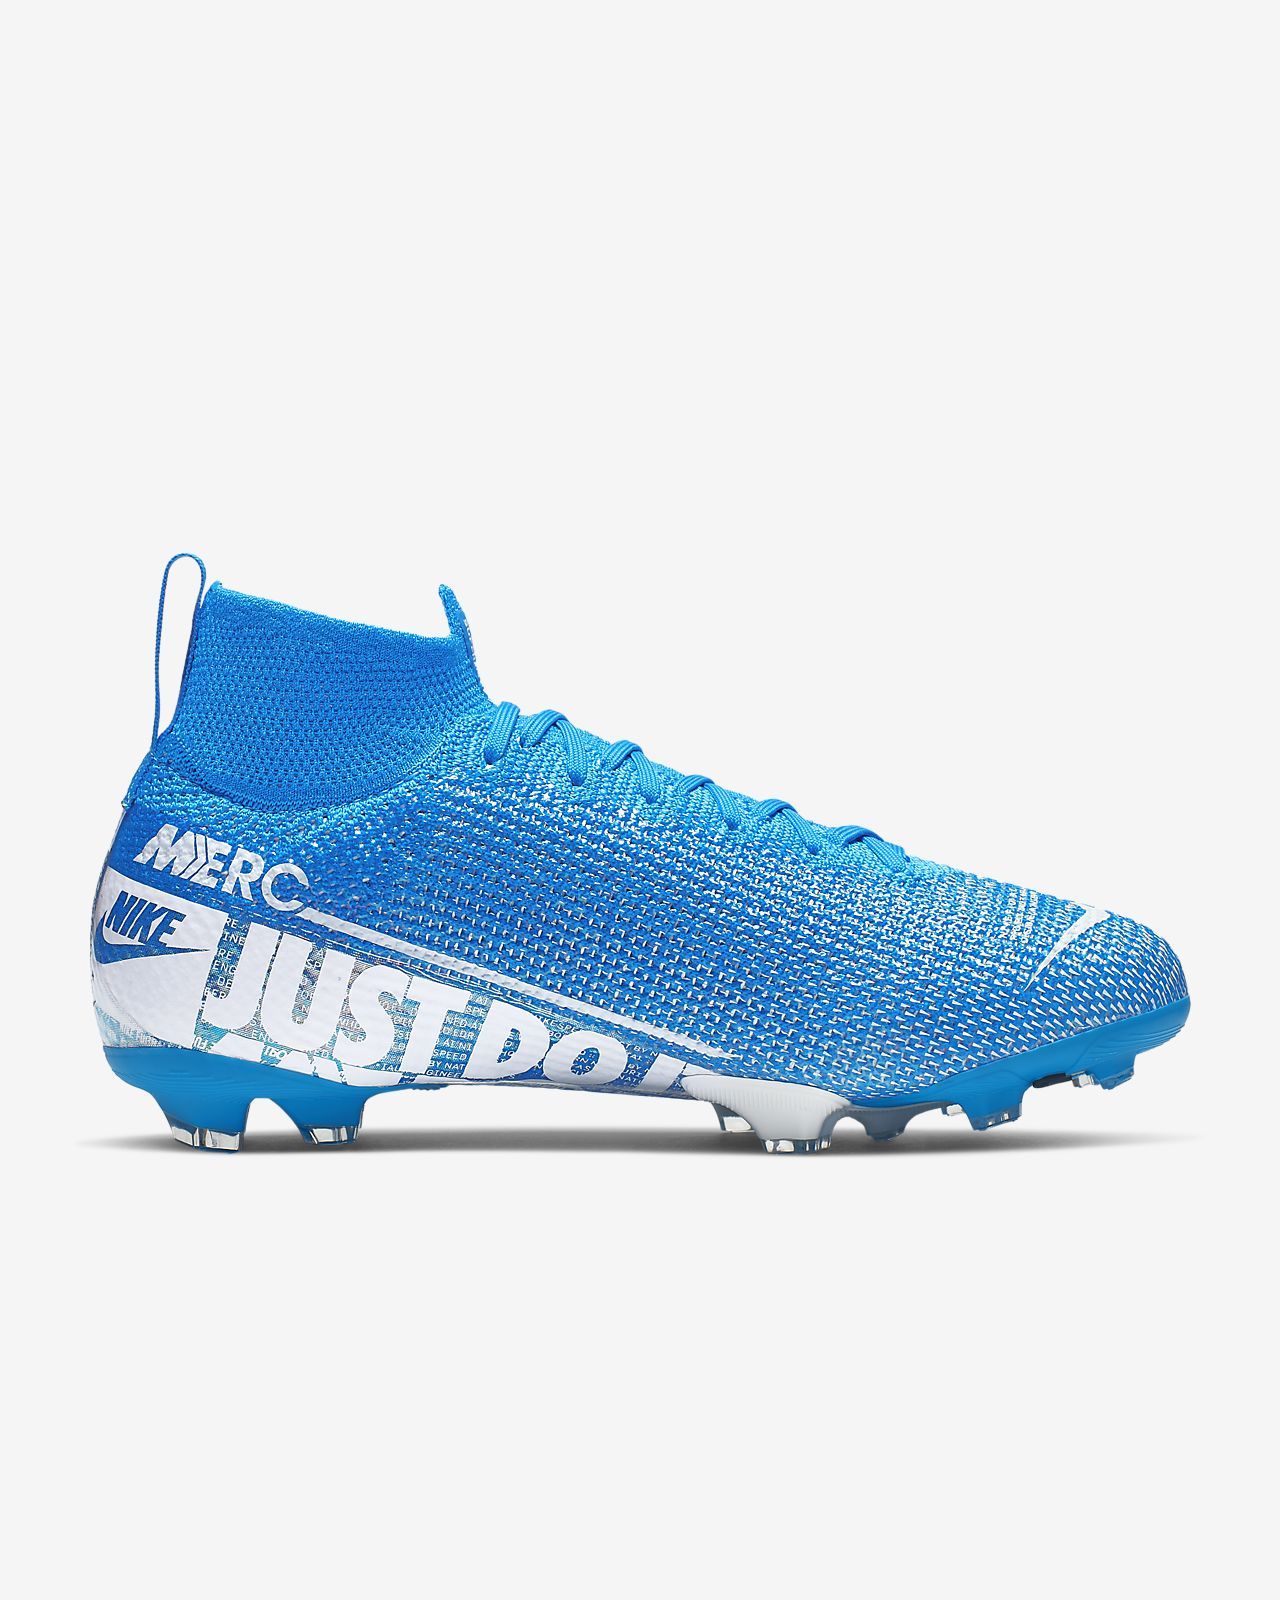 a8d6ccfabe Nike Jr. Mercurial Superfly 7 Elite FG Kids' Firm-Ground Soccer Cleat